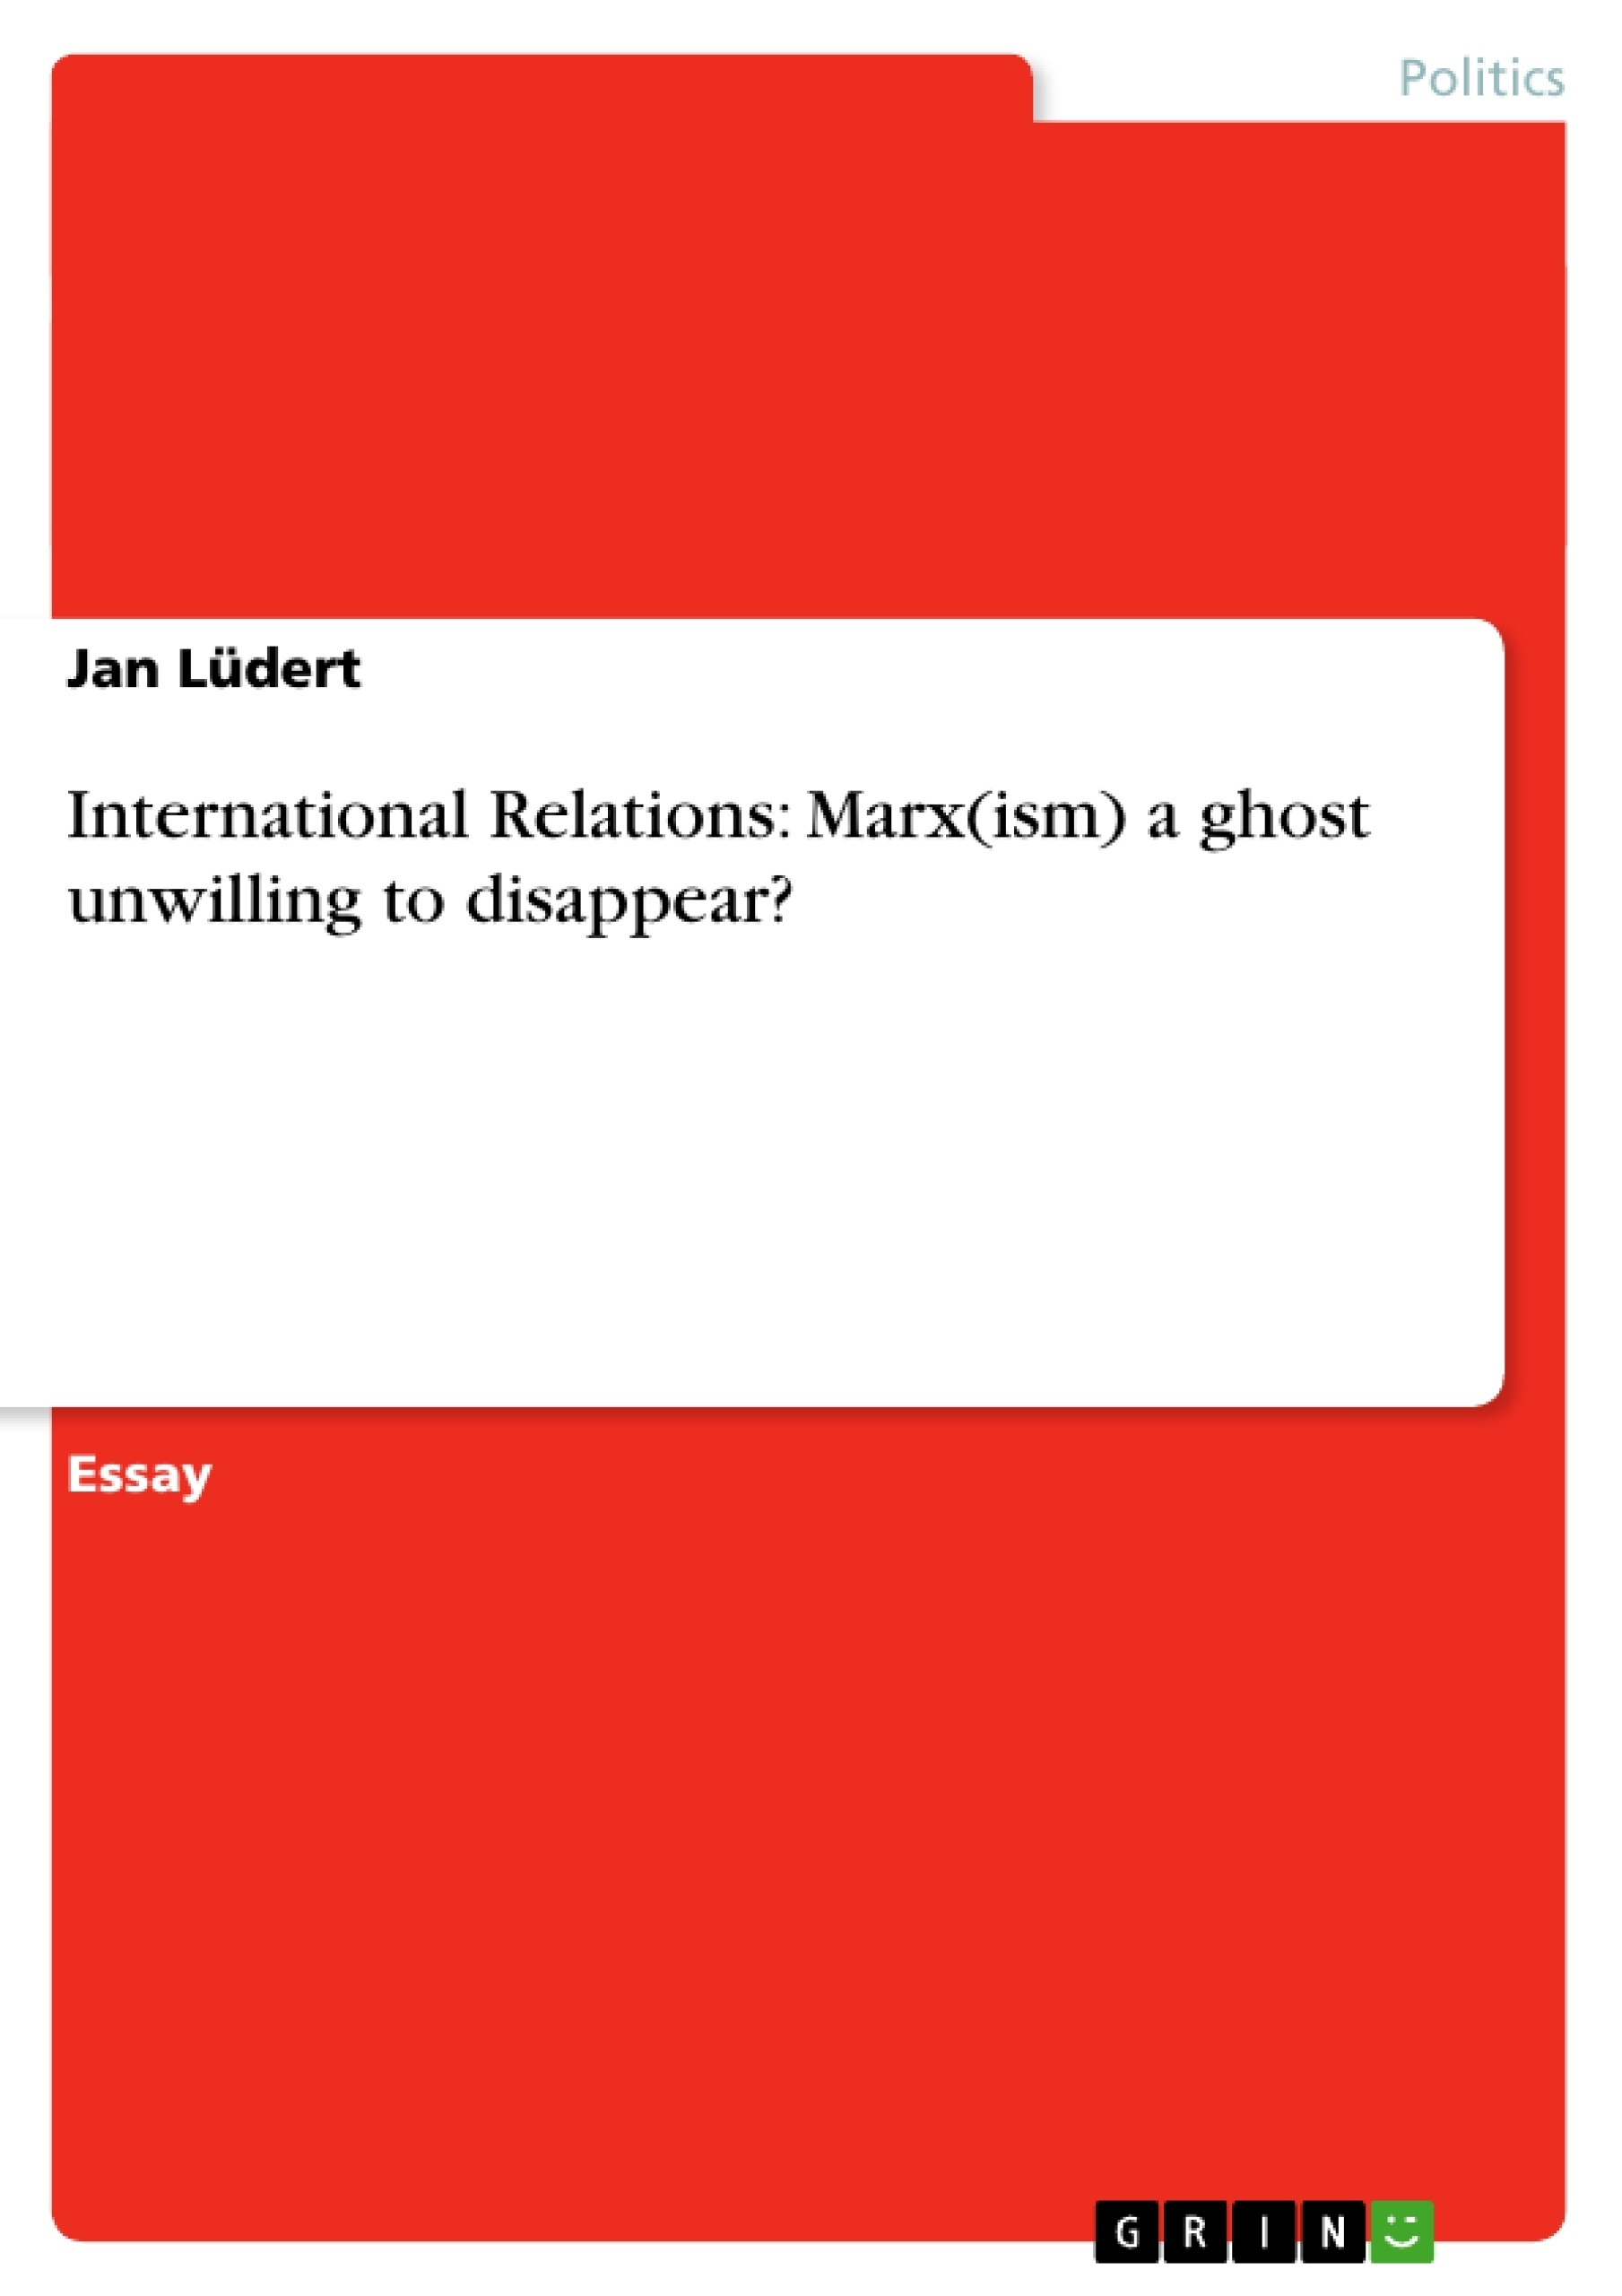 Title: International Relations: Marx(ism) a ghost unwilling to disappear?